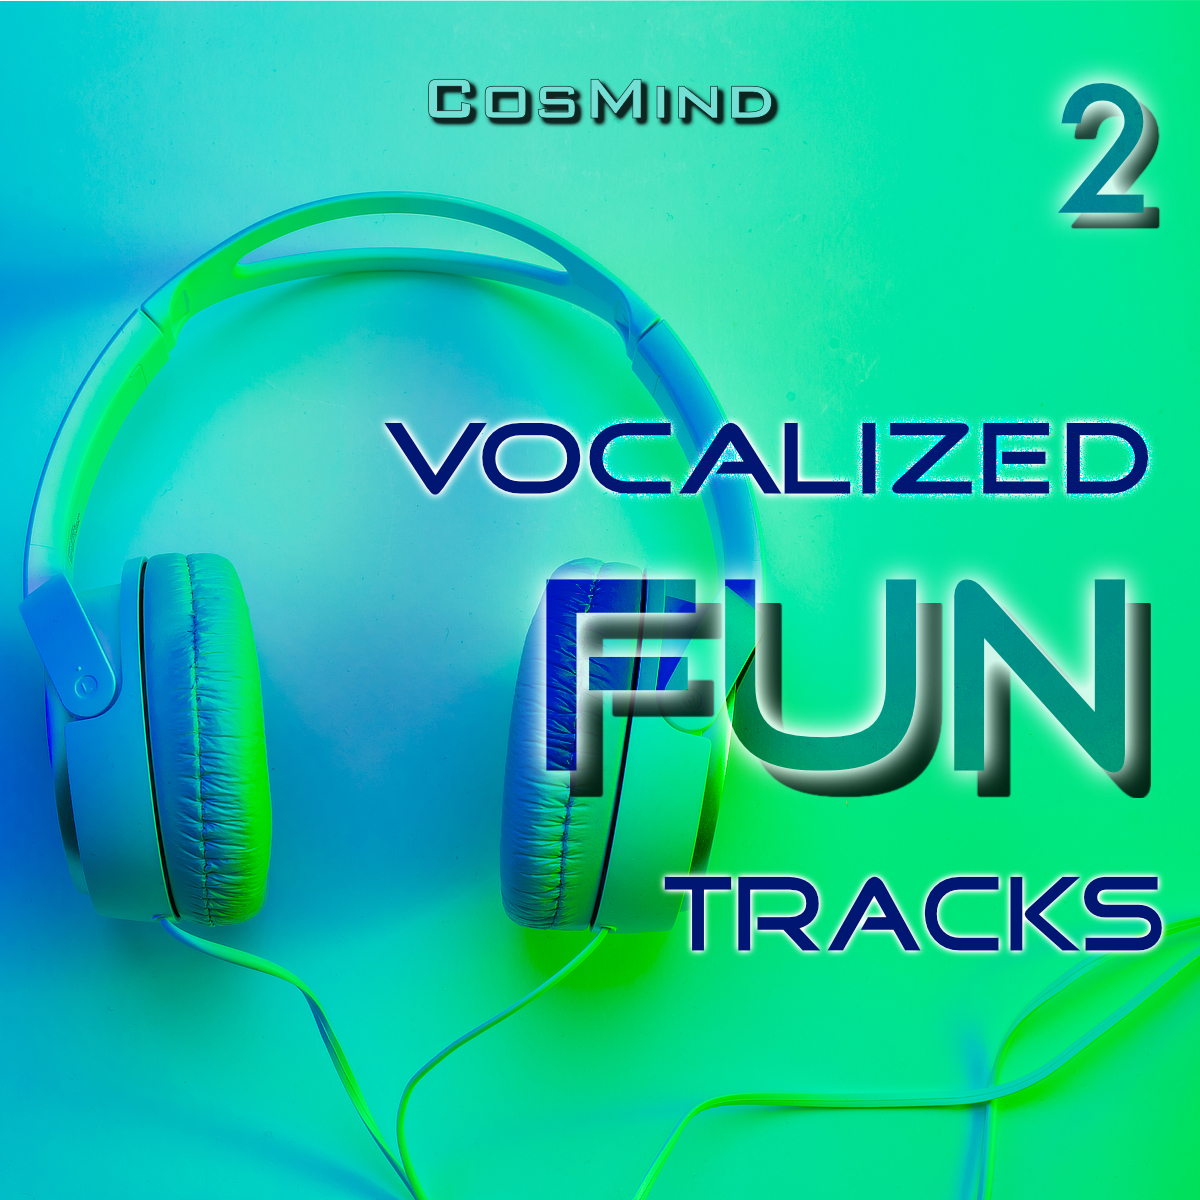 Vocalized Fun Tracks 2